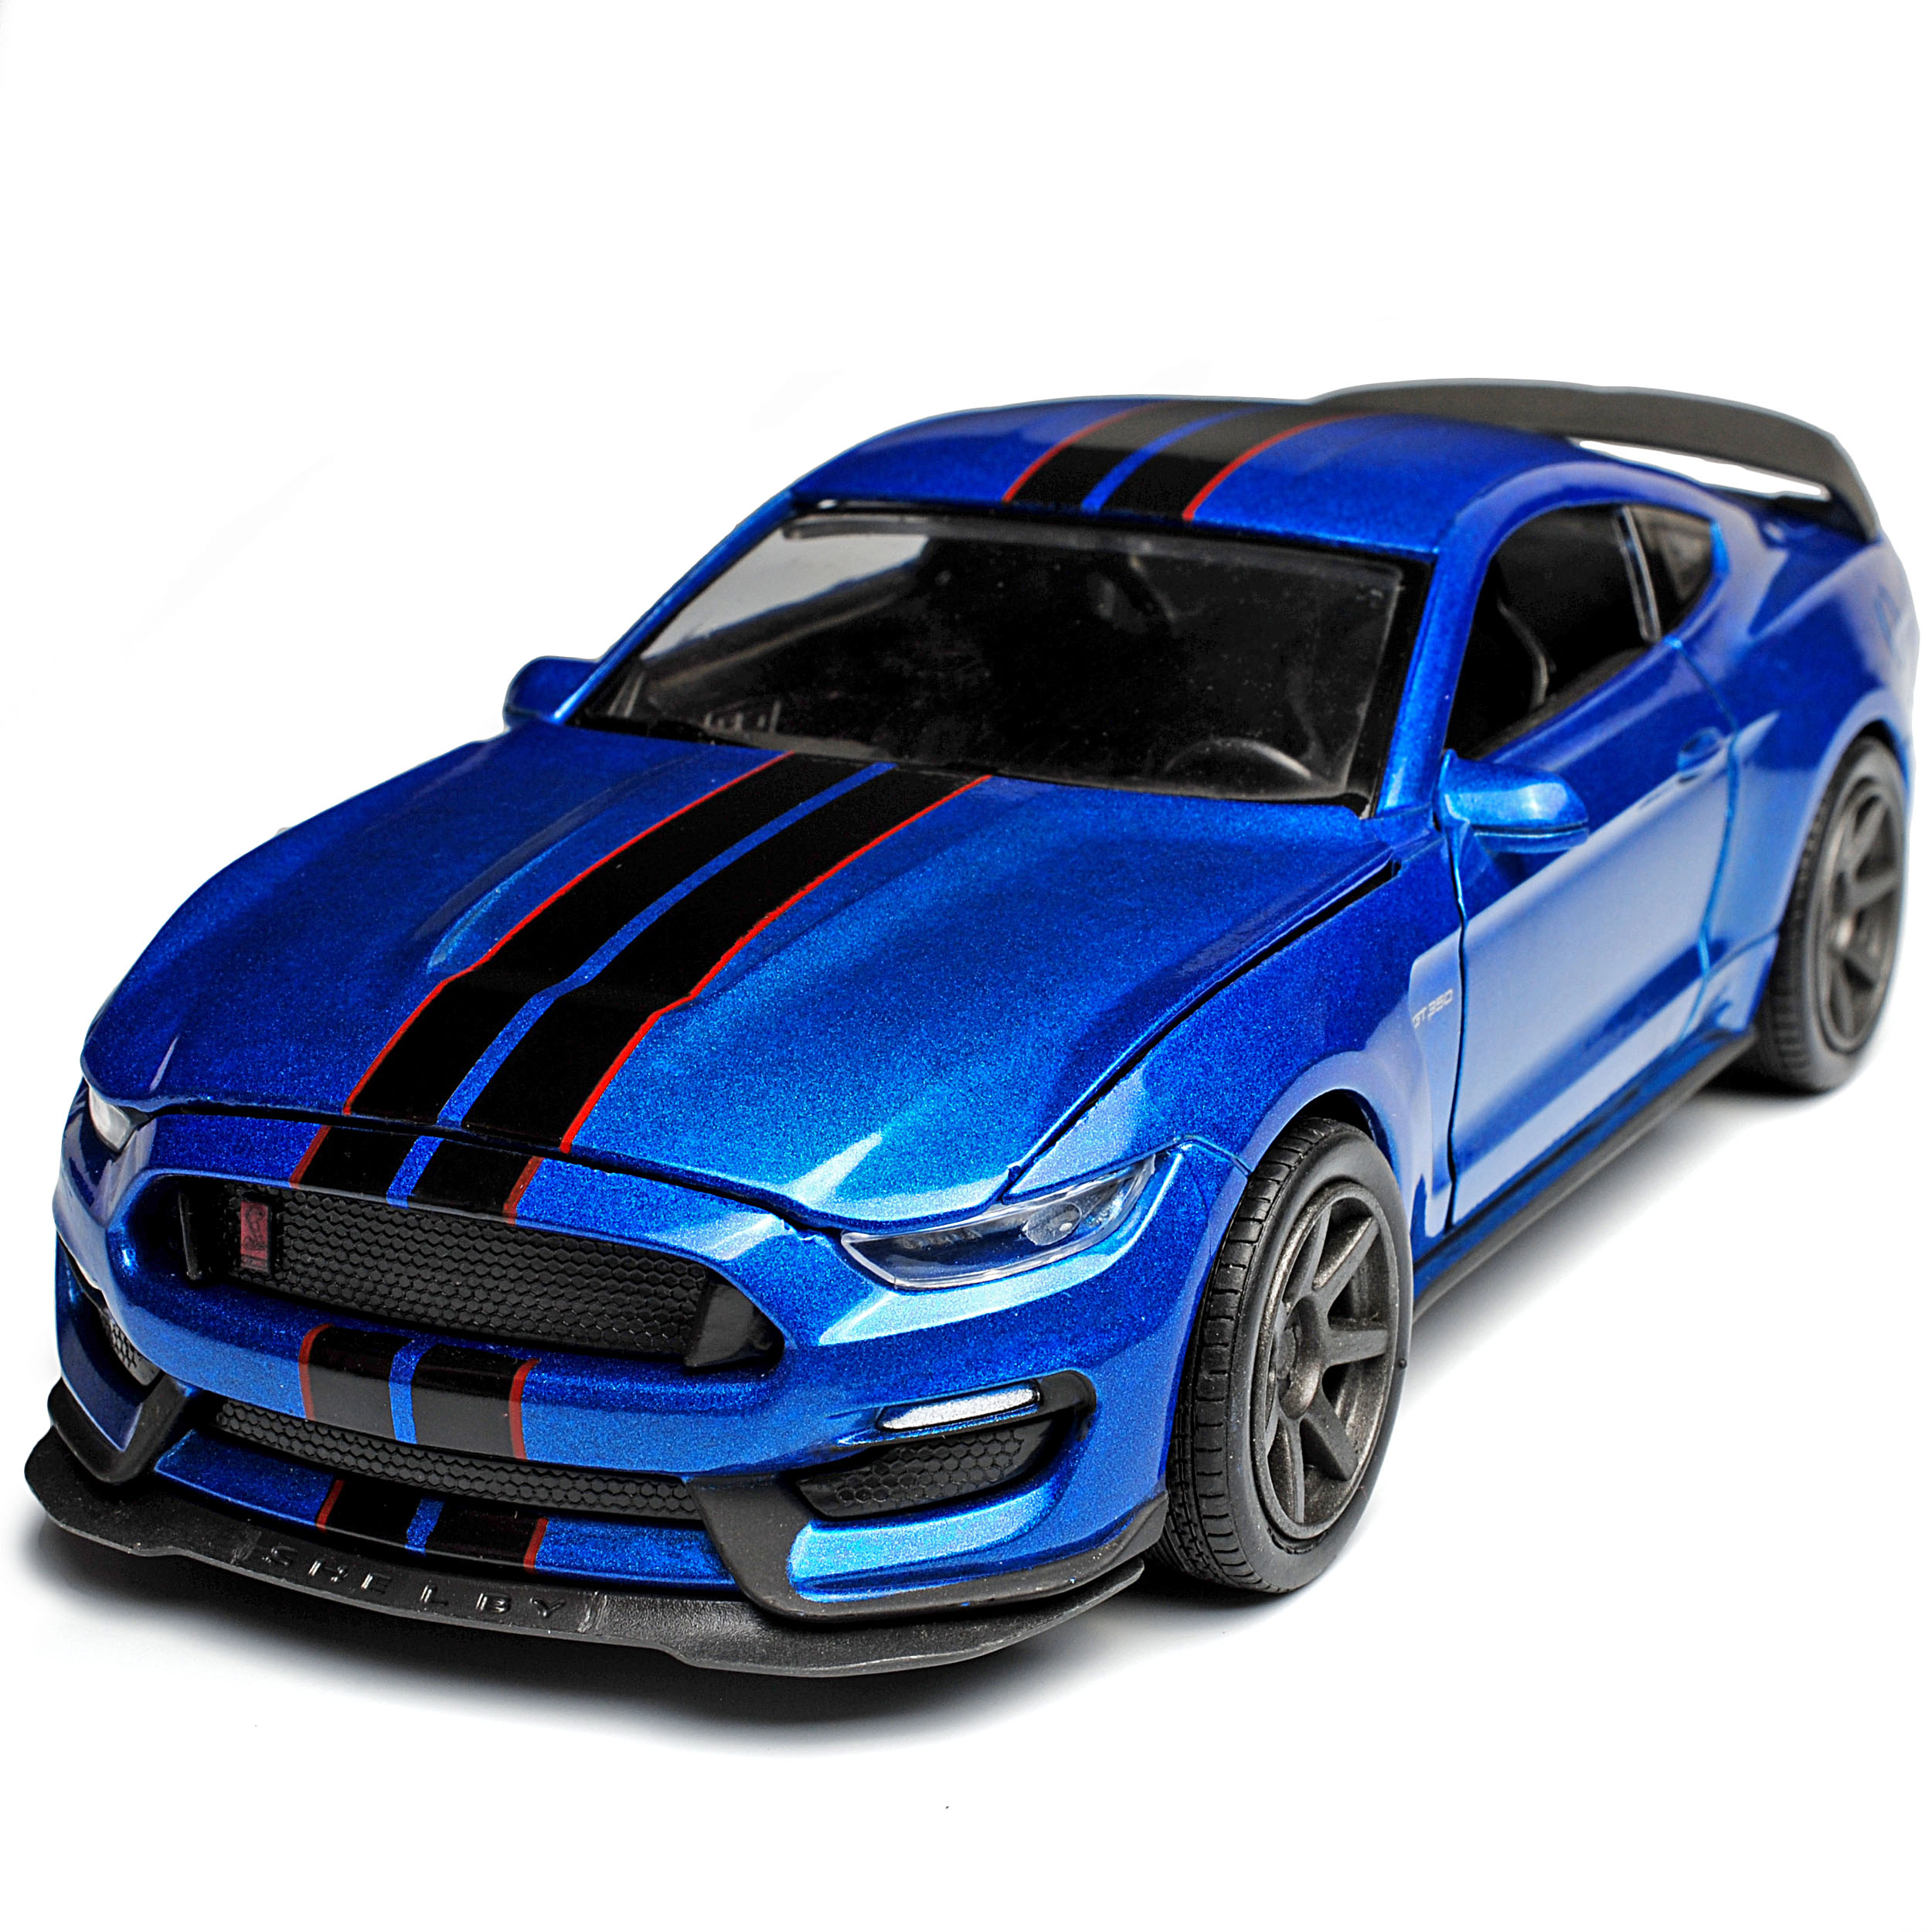 Shelby Gt Coupe: Ford Shelby Mustang GT350R VI Coupe Blau Mit Schwarzen